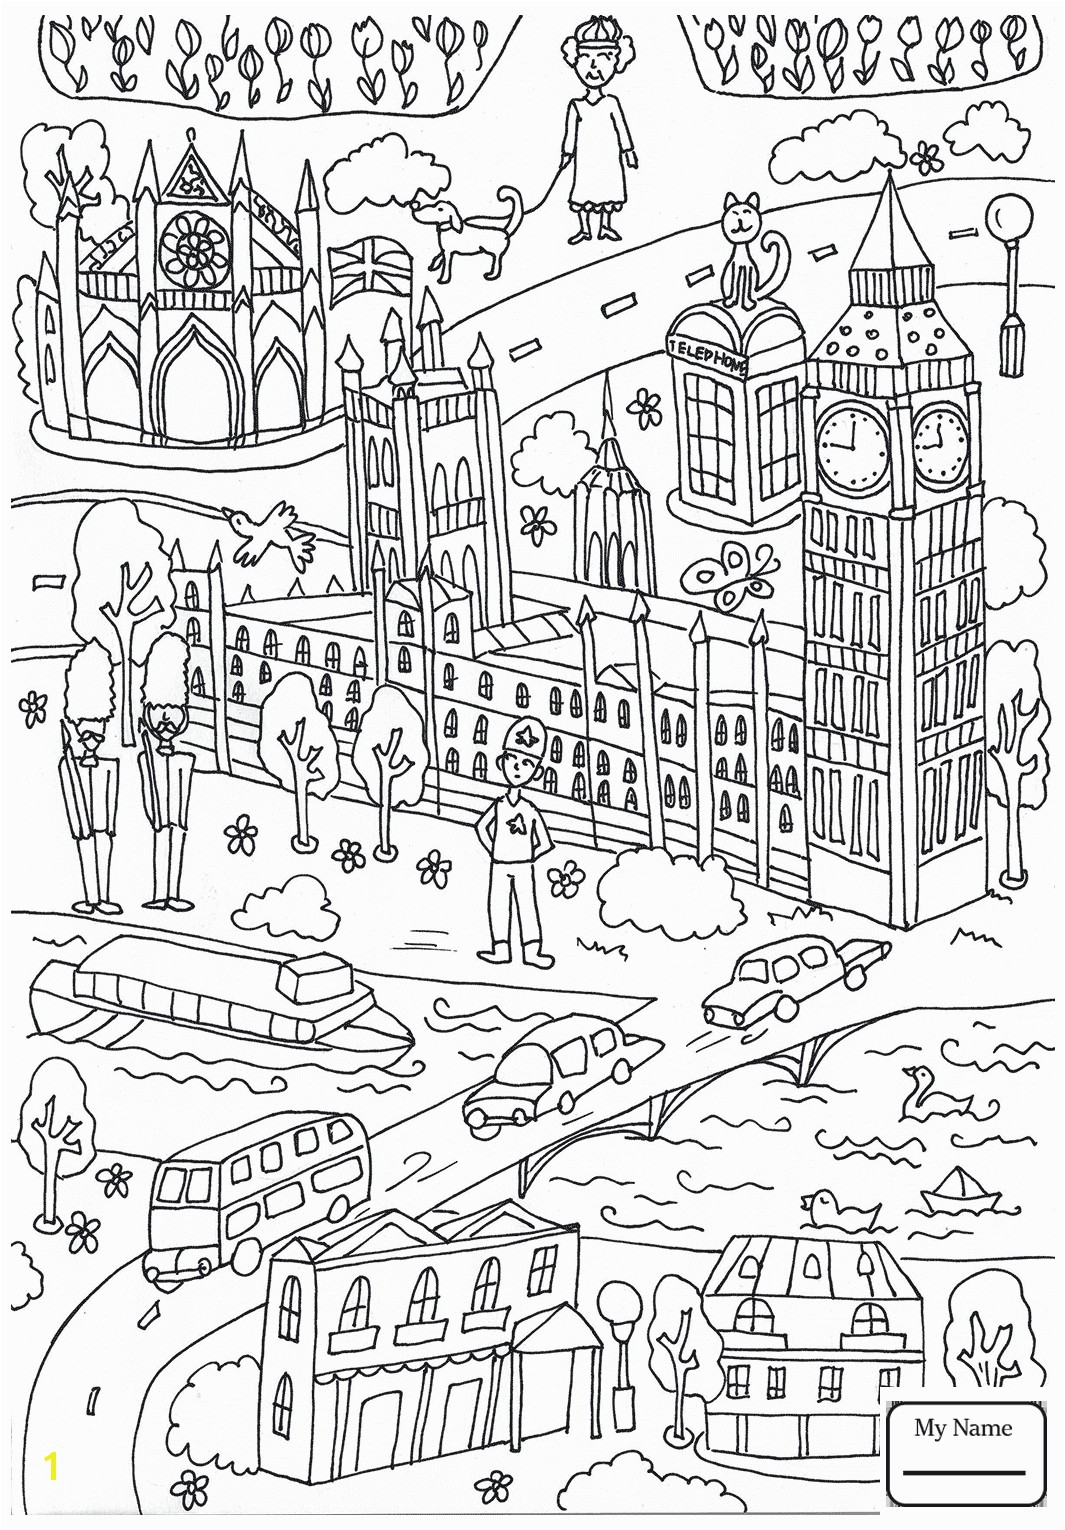 Endorsed Central Park Coloring Pages And Plaza Hotel Arts Culture